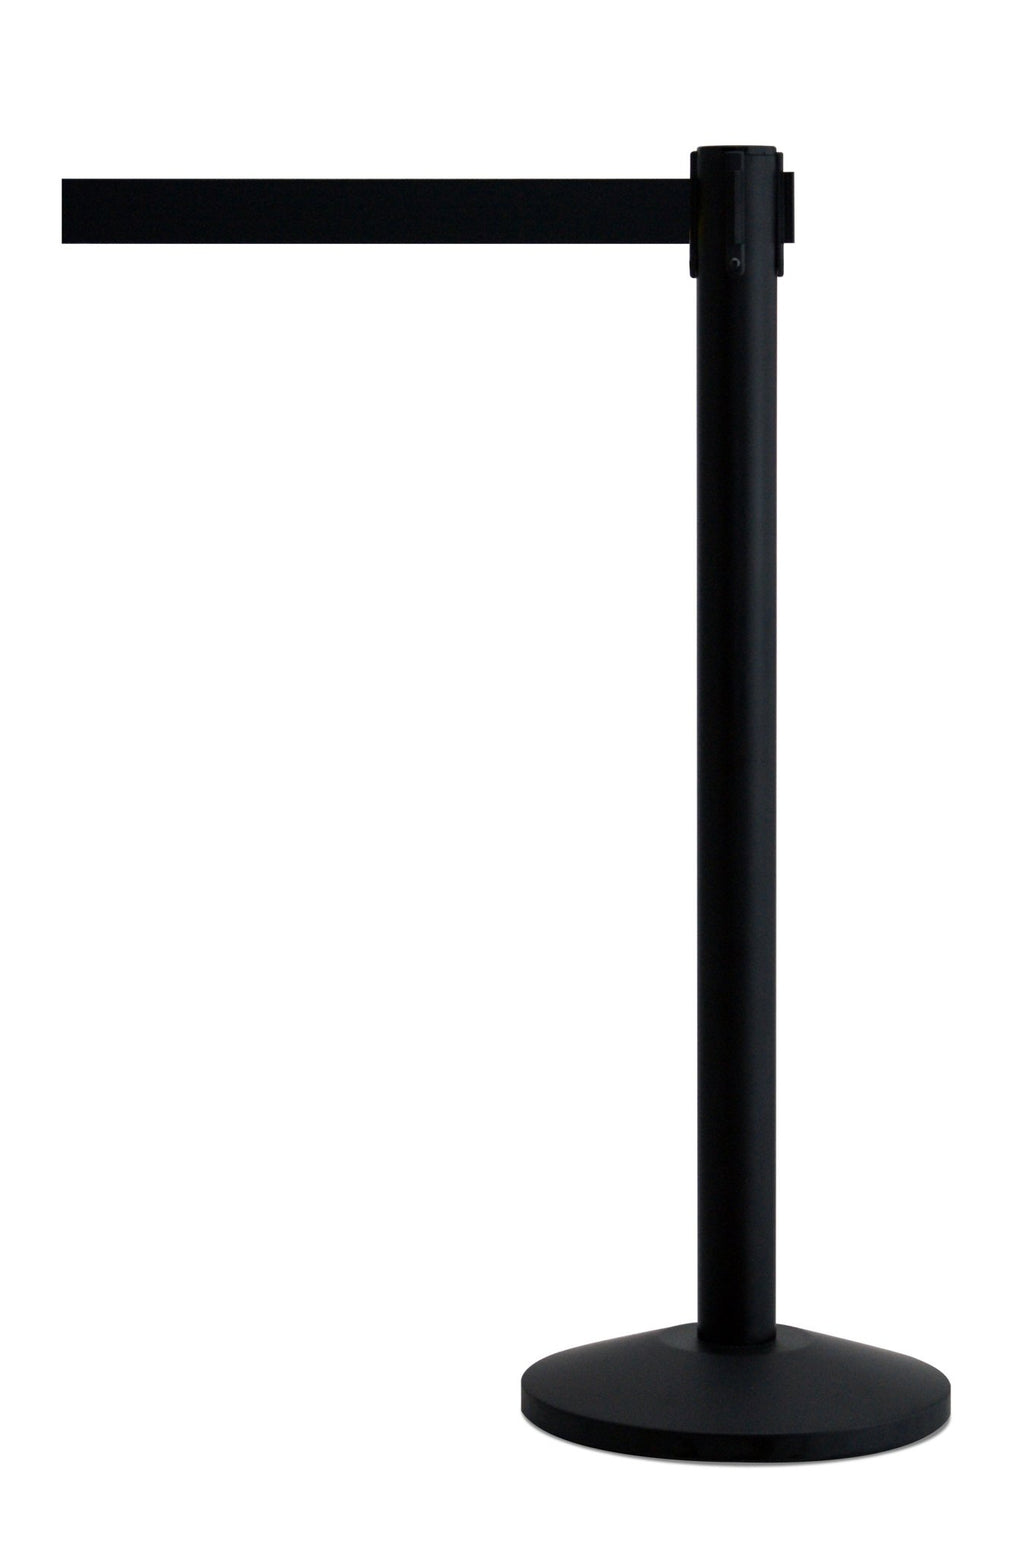 Queueway Retractable Belt Stanchion - The Crowd Controller